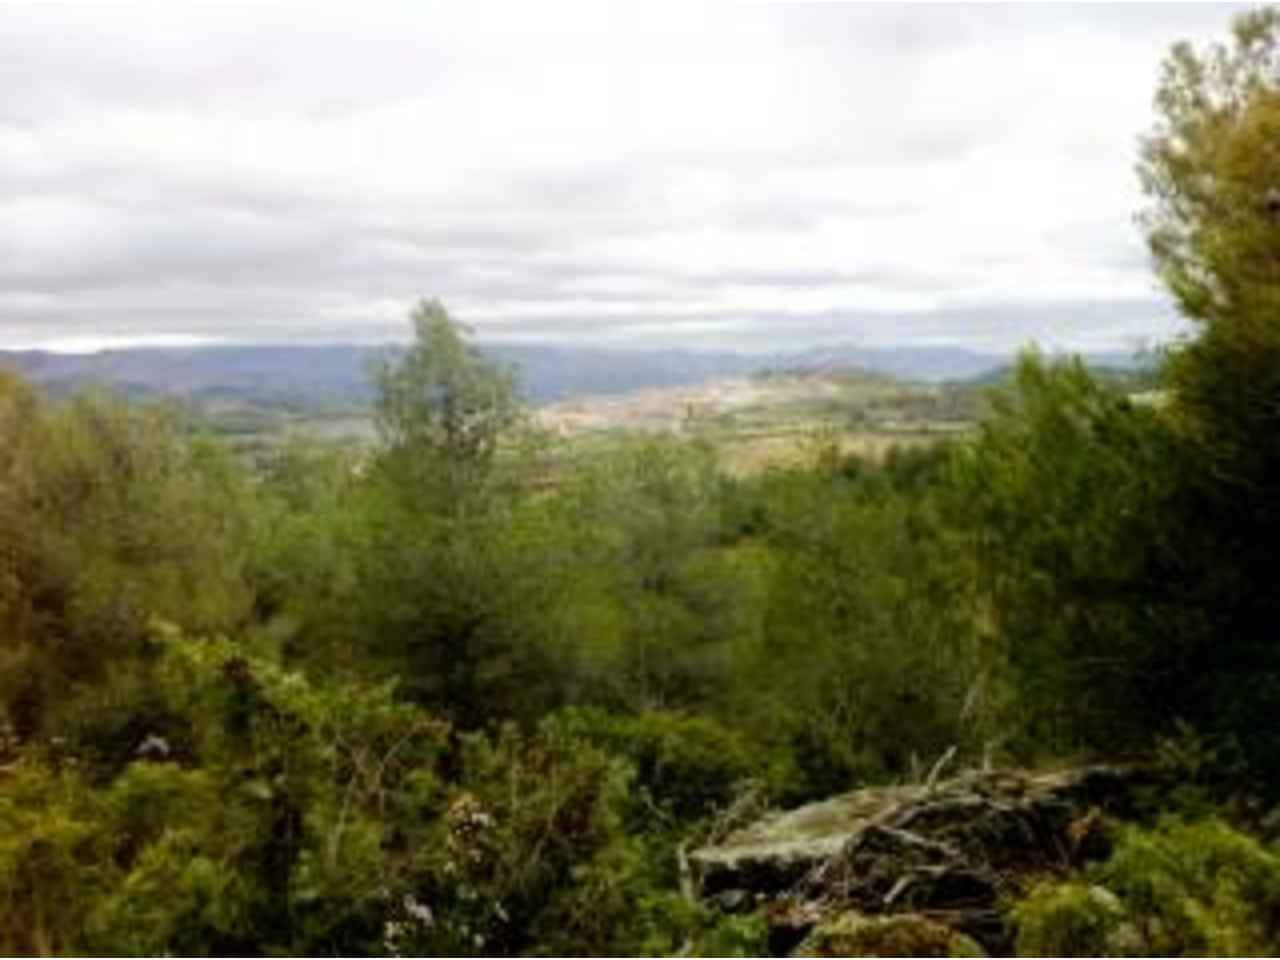 Undeveloped Land for sale in Monroyo - € 25,000 (Ref: 3318830)